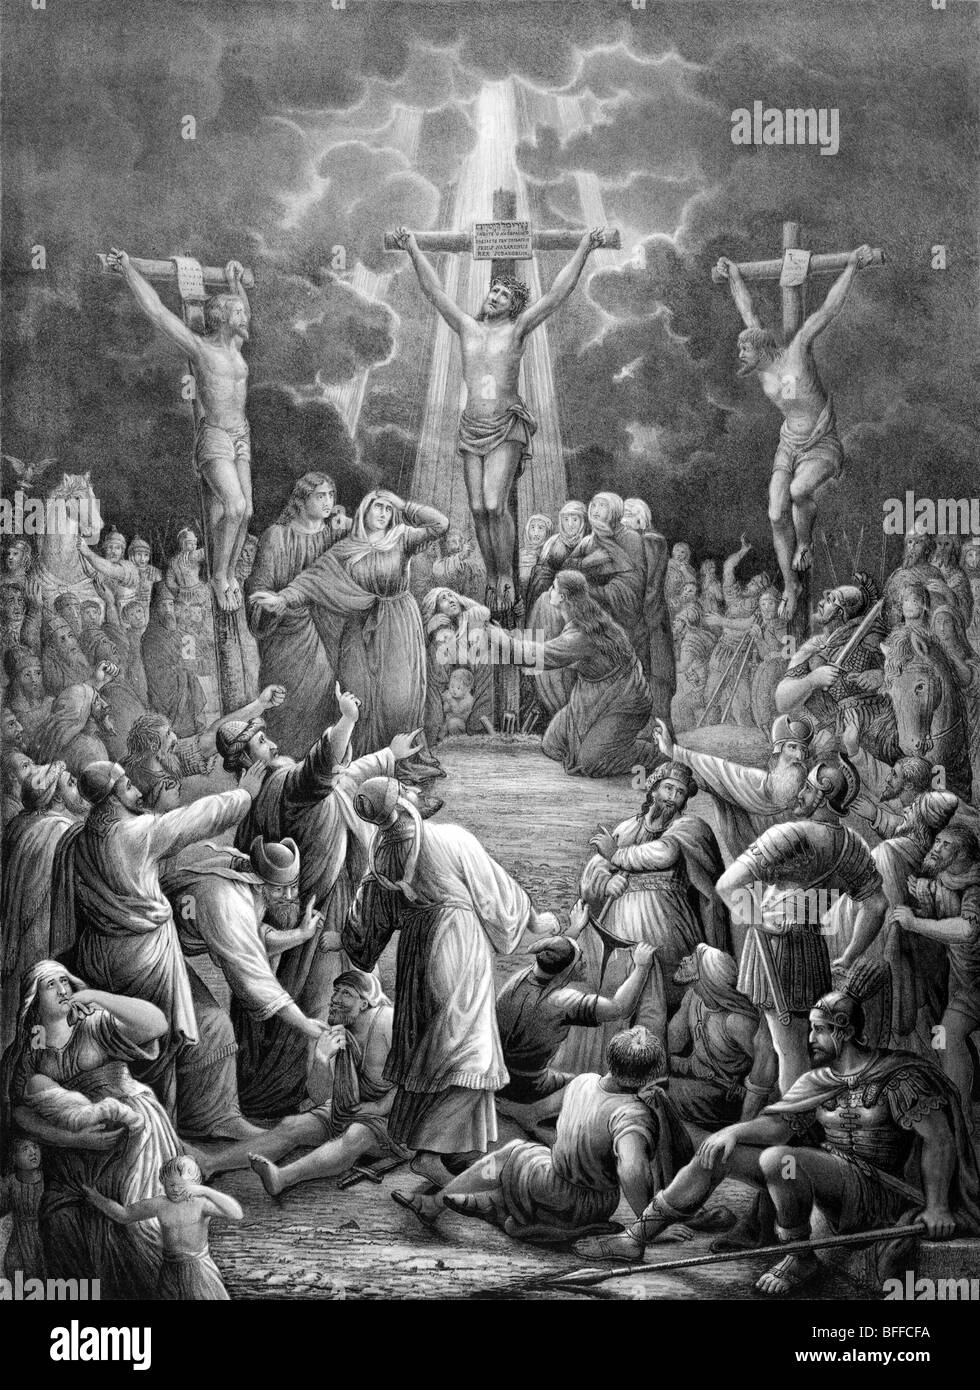 Print depicting the crucifixion of Jesus Christ at Golgotha, outside the walls of ancient Jerusalem, in the first - Stock Image